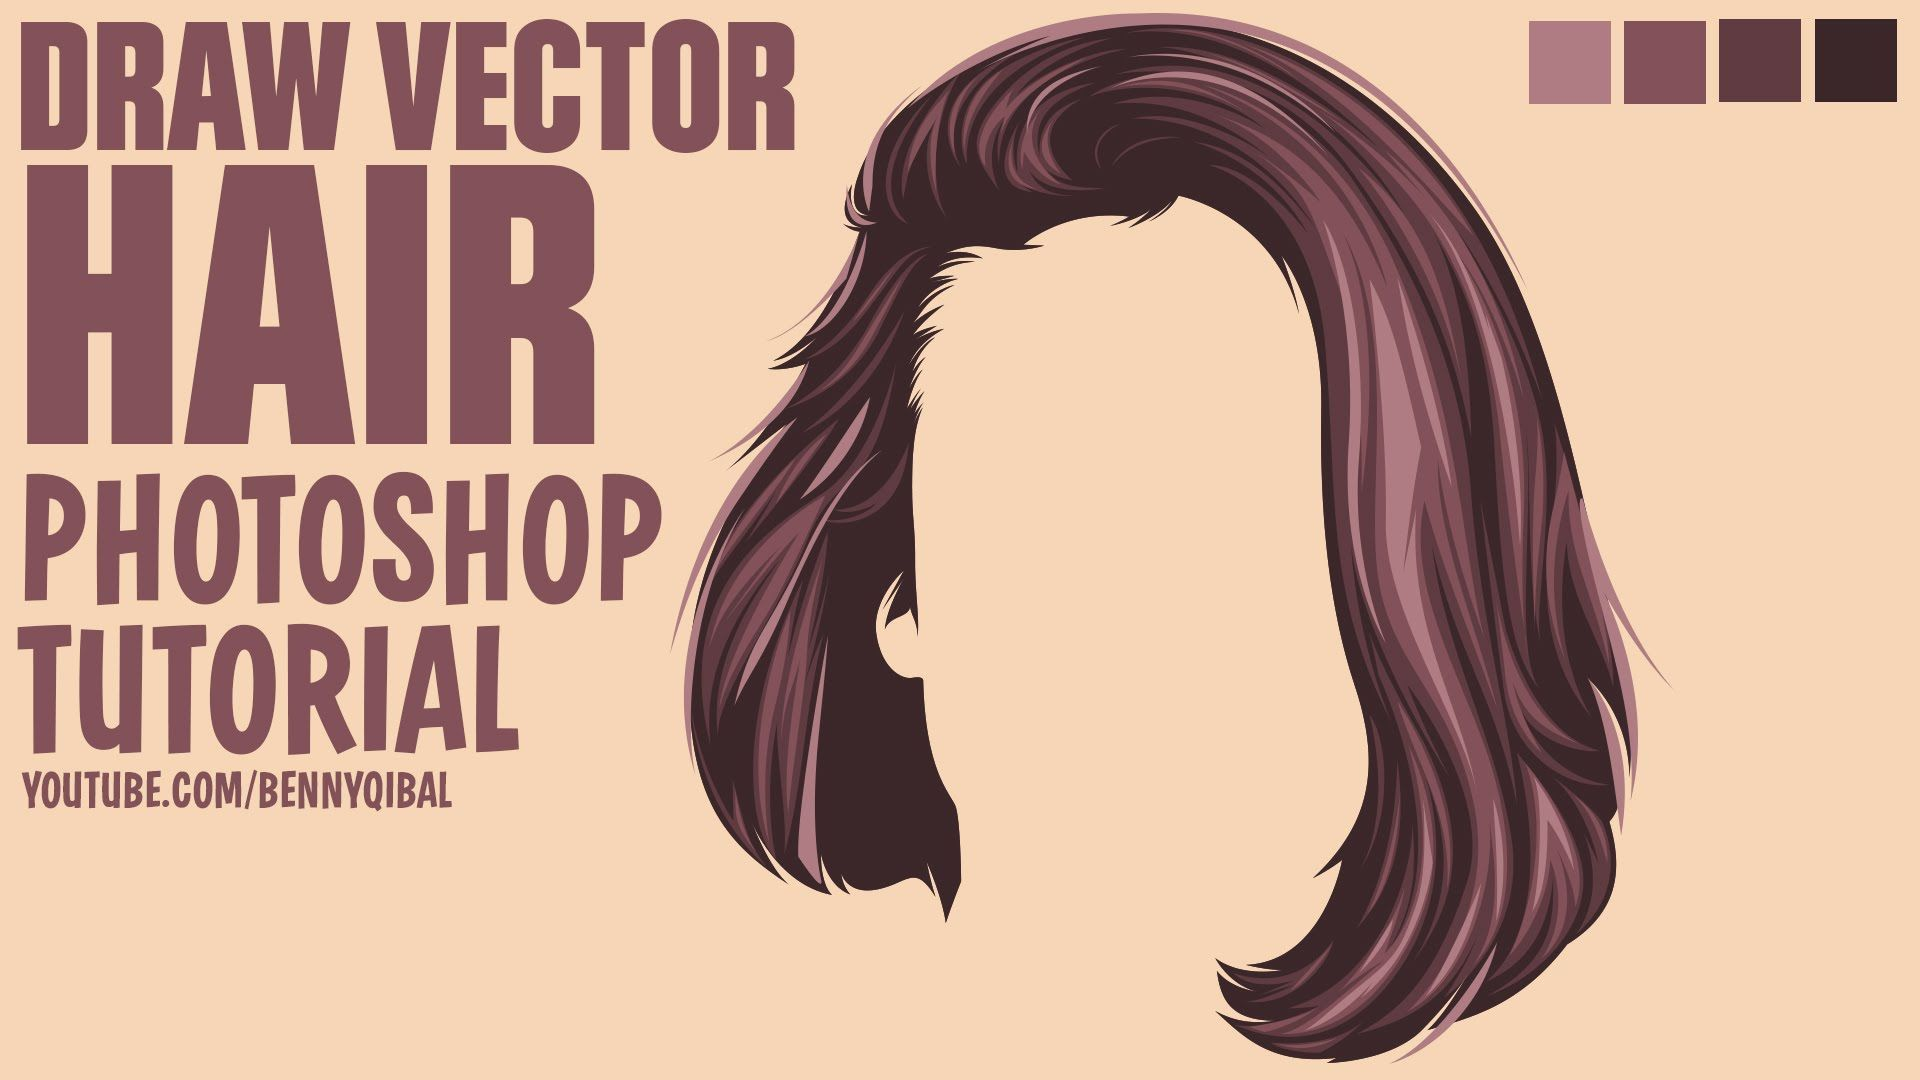 Draw Vector Hair Photoshop Tutorial In this tutorials i will